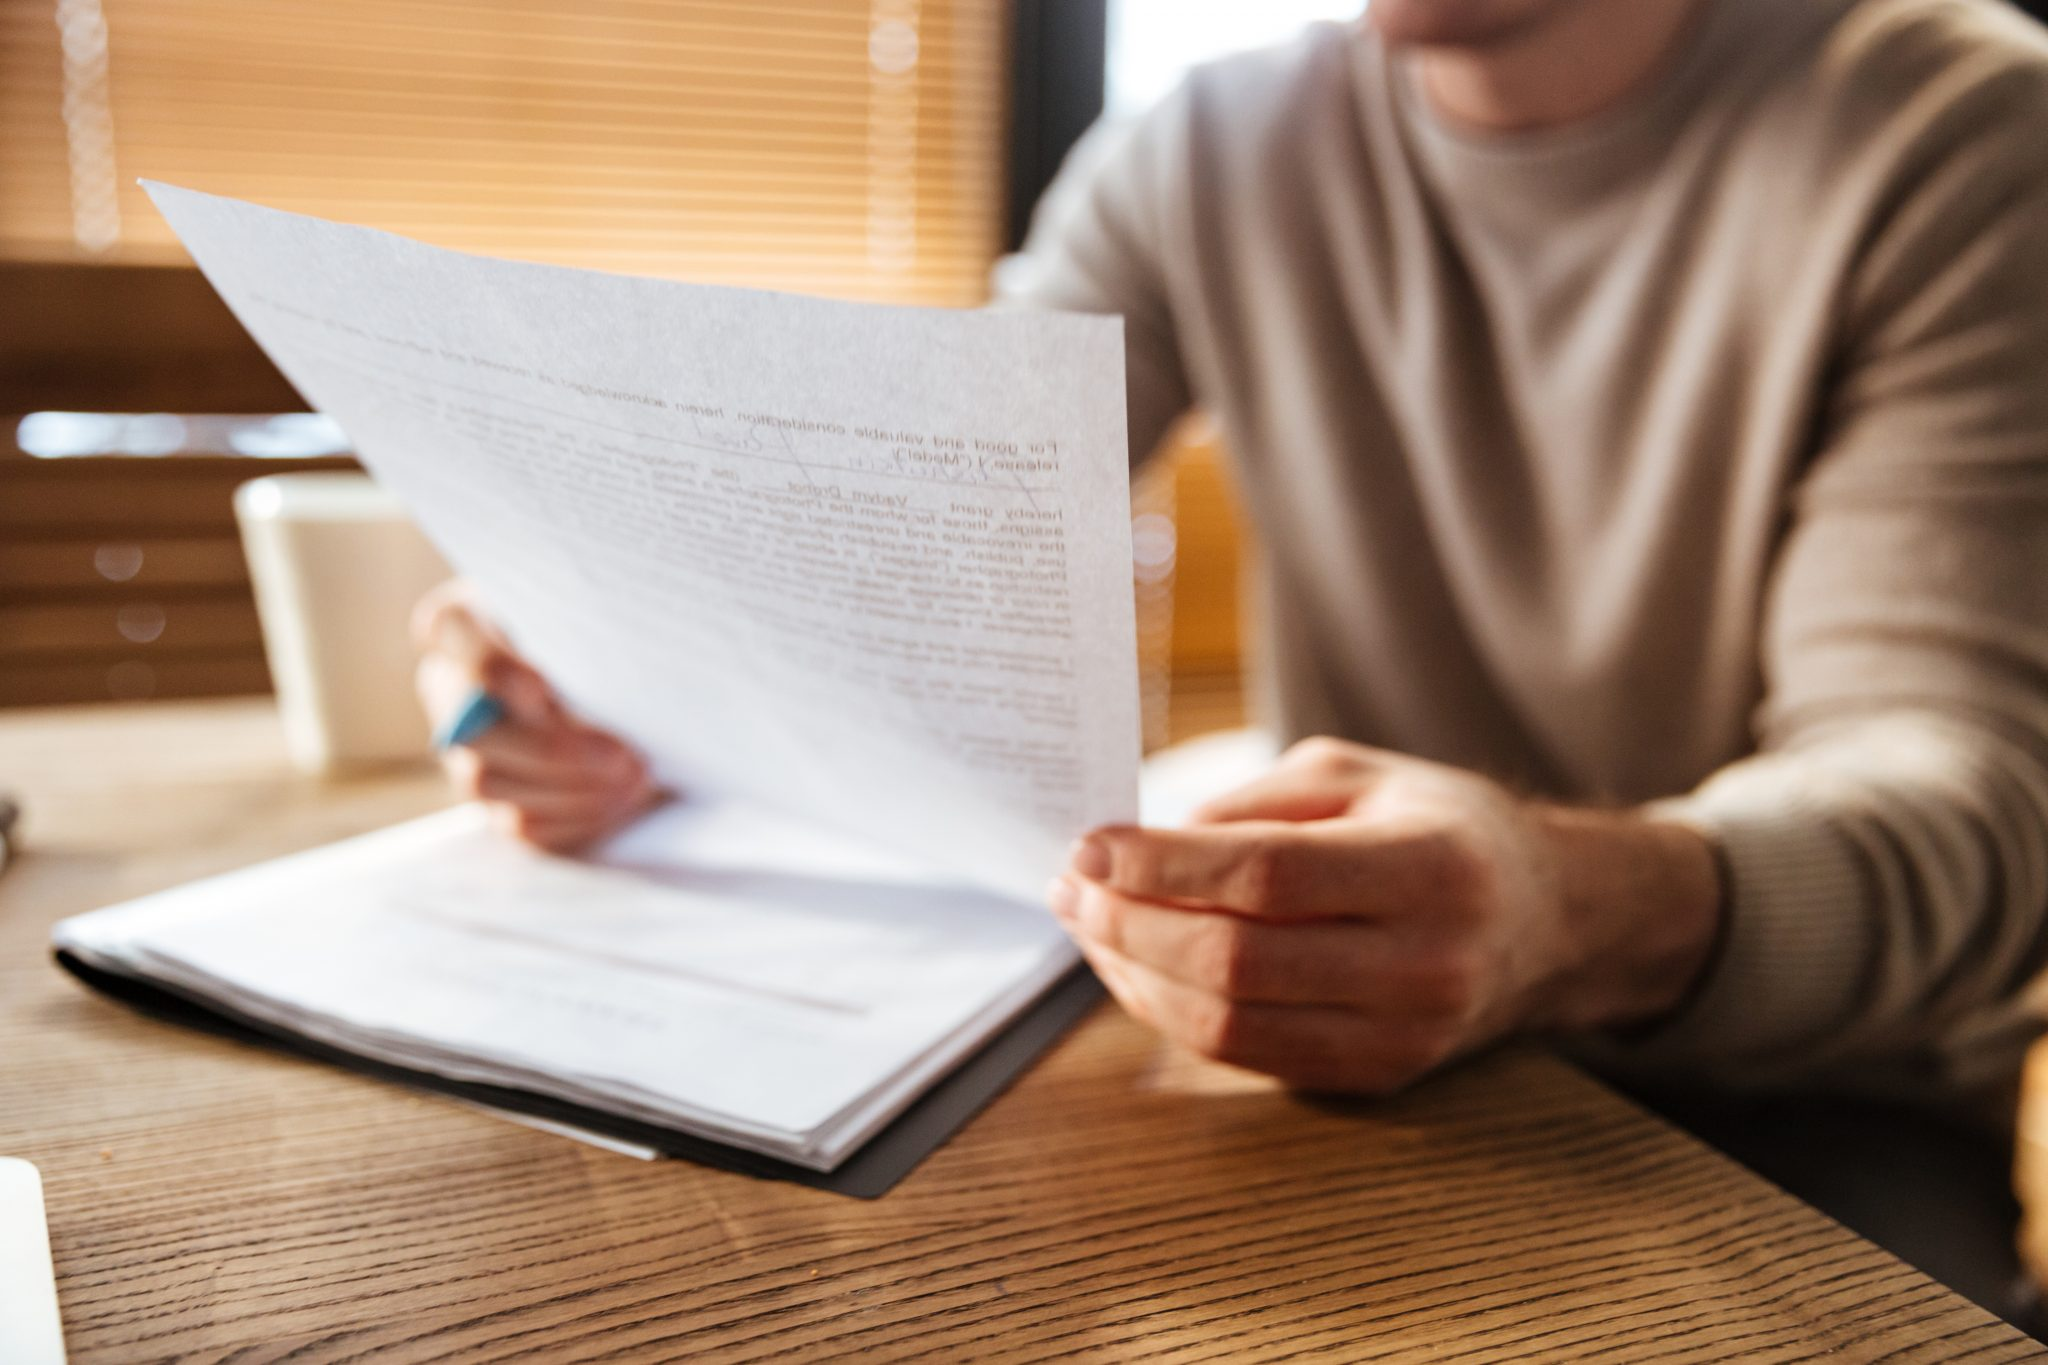 Reviewing Documents Made Easy